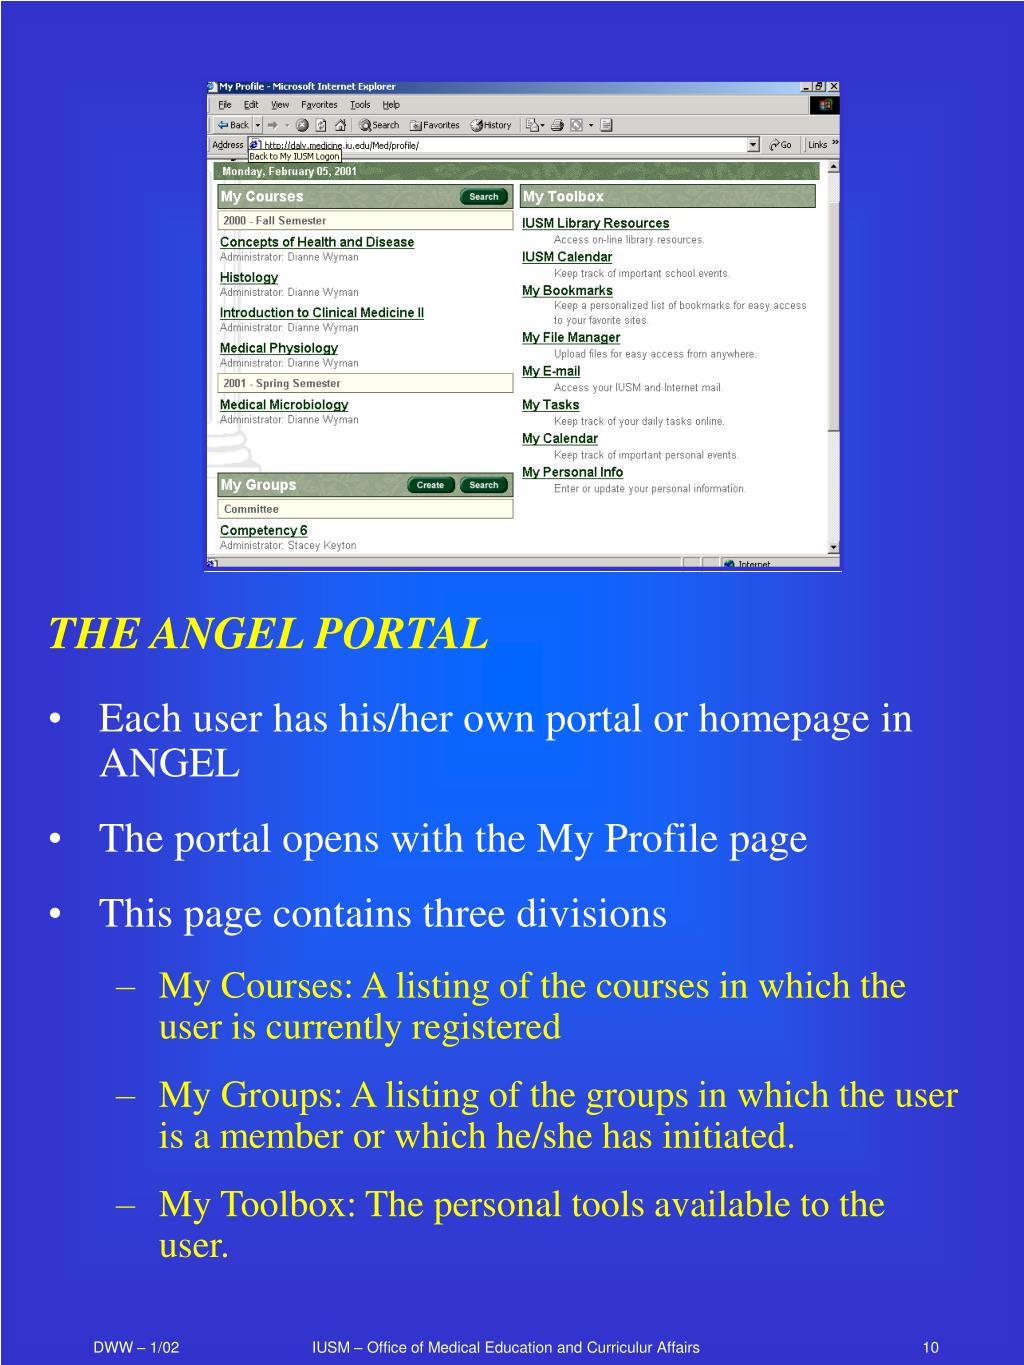 THE ANGEL PORTAL